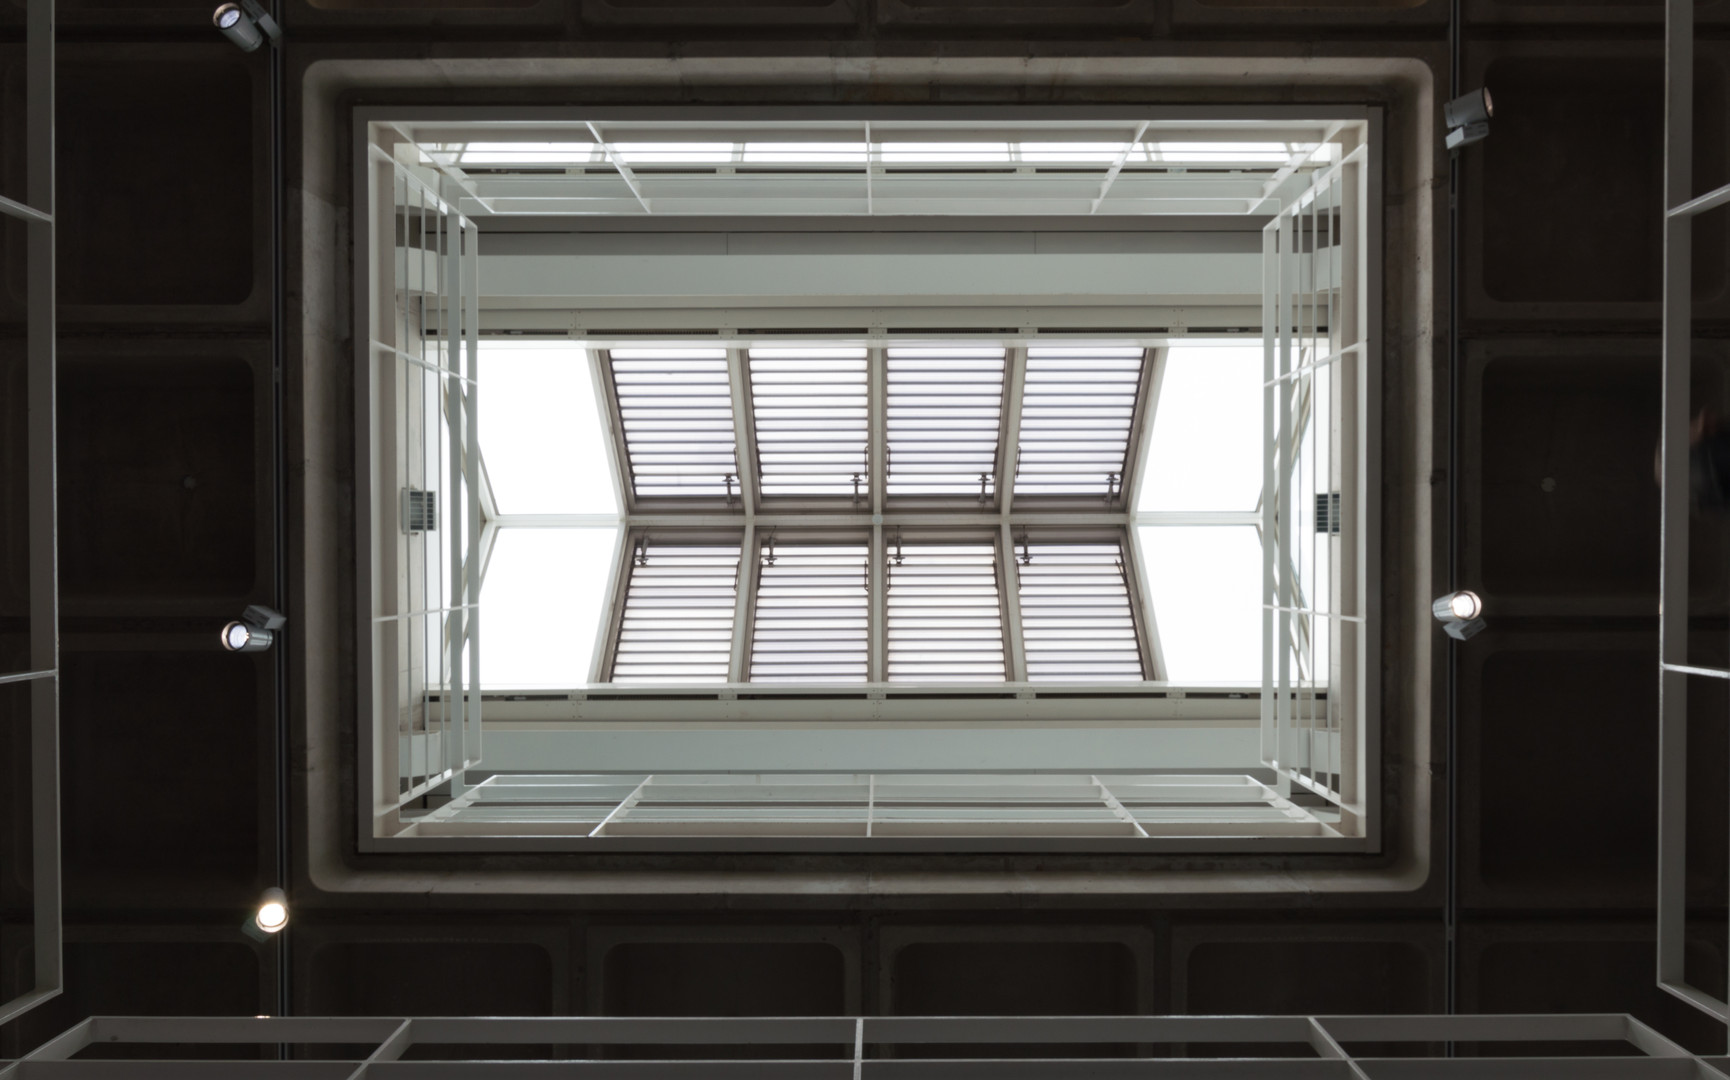 upshot of the central atrium roof window of the Engineering Building in UCD, Dublin